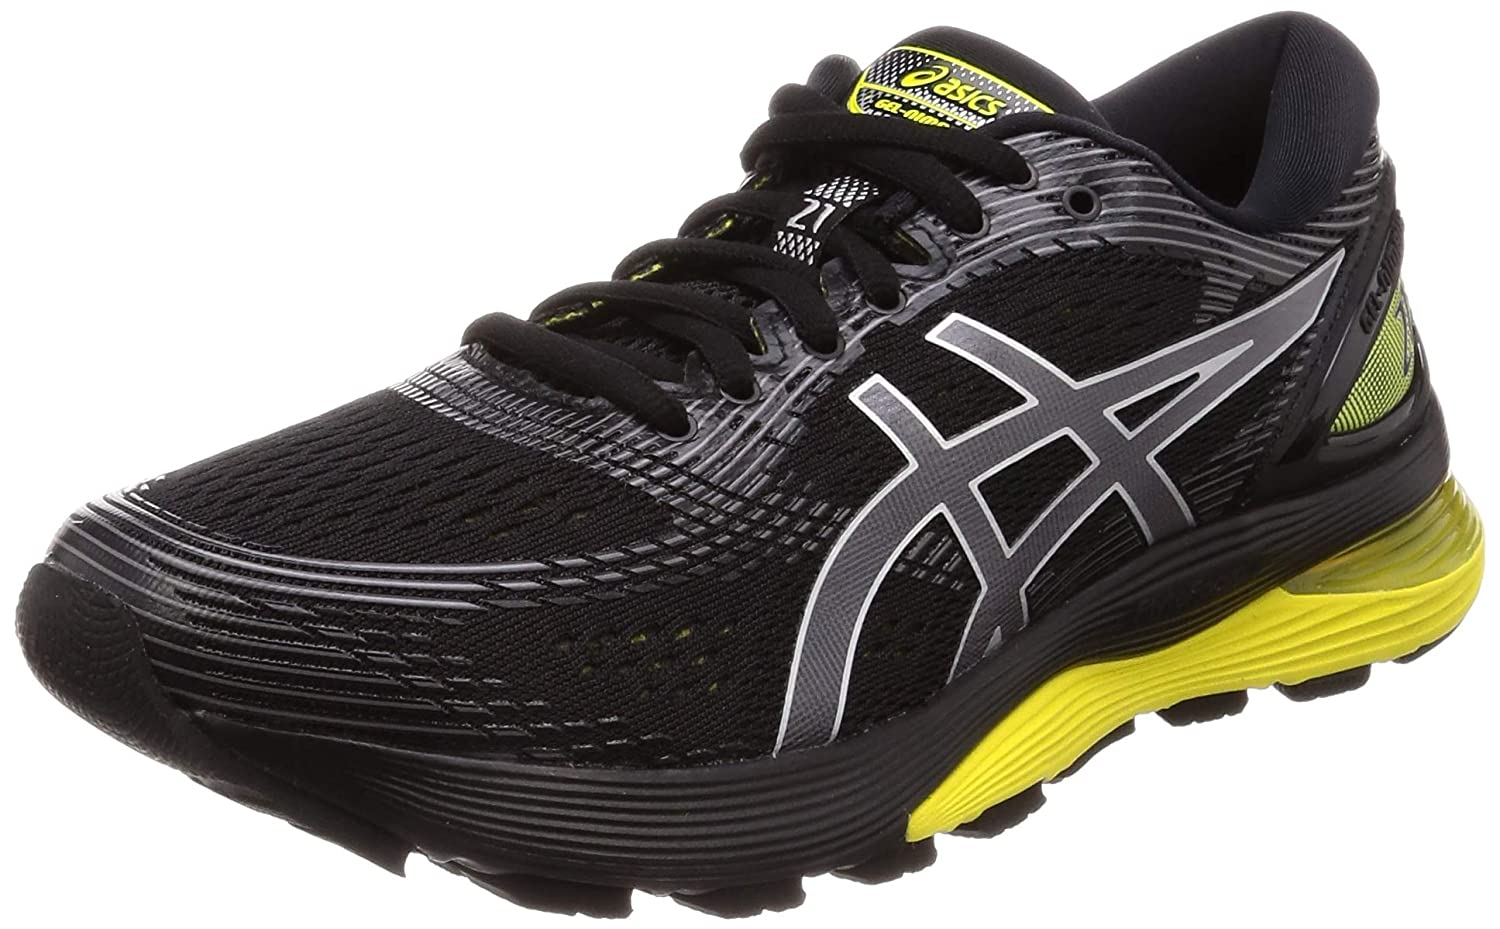 58ca78bbcb6 Amazon.com | ASICS Men's Gel-Nimbus 21 Running Shoe Black/Lemon Spark 10.5 M  US | Shoes